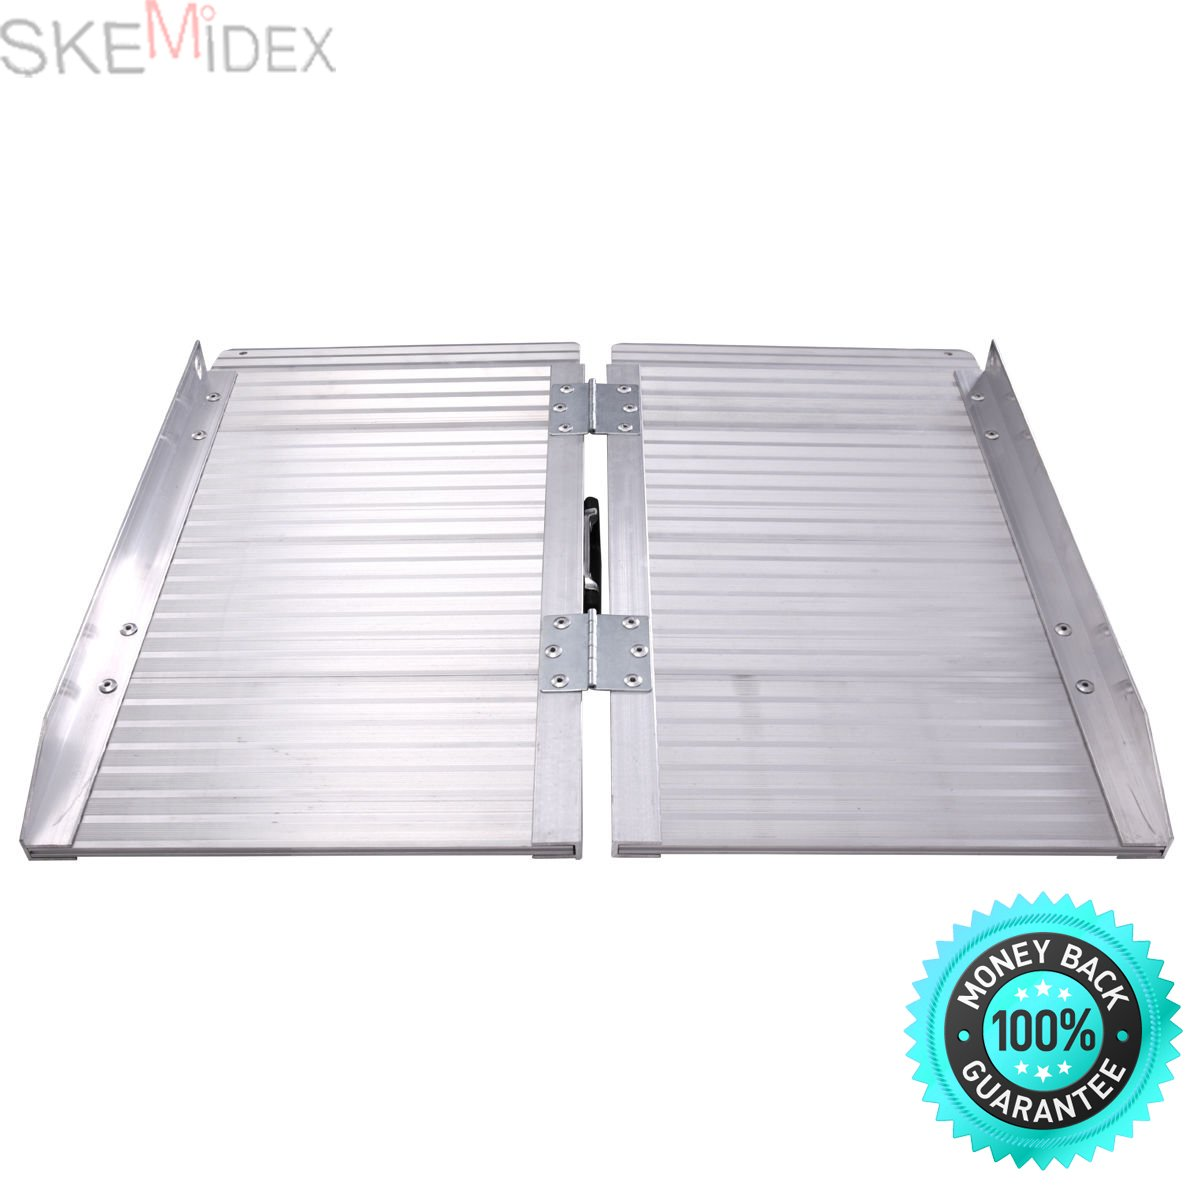 SKEMiDEX---2' Aluminum Fold Portable Wheelchair Ramp Mobility Handicap Suitcase Threshold. It's great for wheelchairs, curbs, low stairs, porches, into van side doors and more